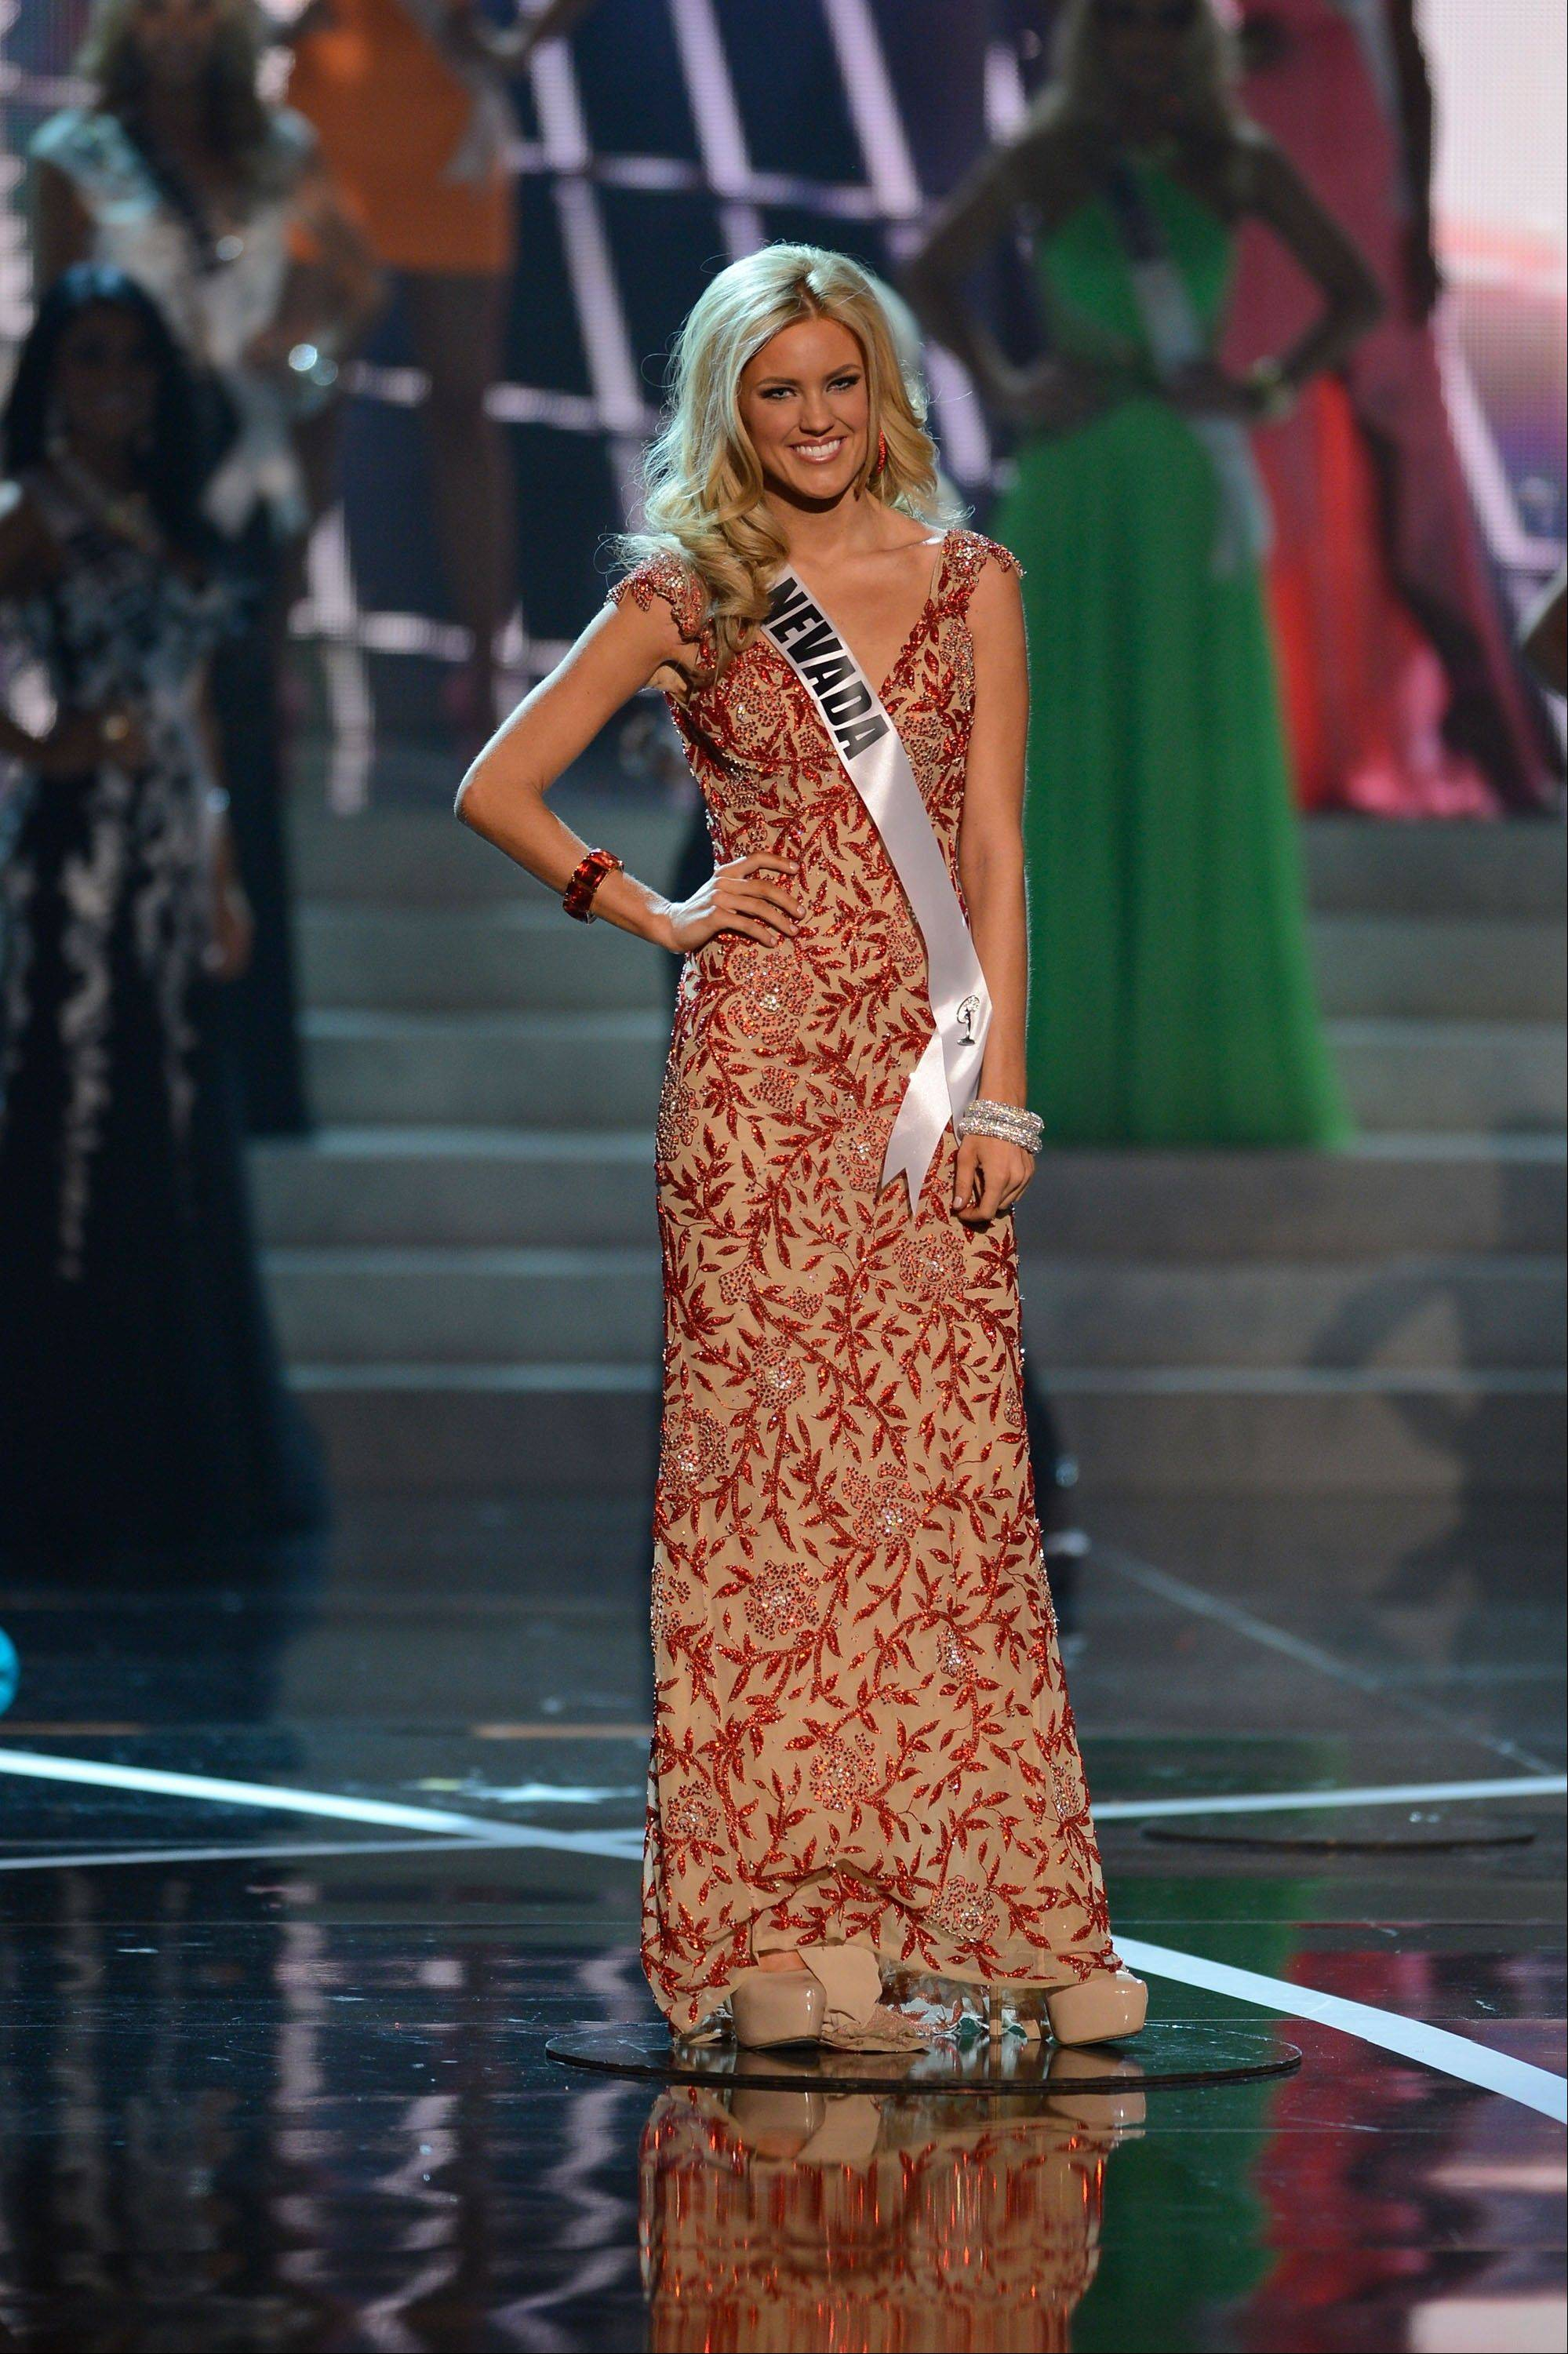 Miss Nevada Chelsea Caswell, from Las Vegas, Nev., walks the runway during the introductions of the Miss USA 2013 pageant, Sunday, June 16, 2013, in Las Vegas.